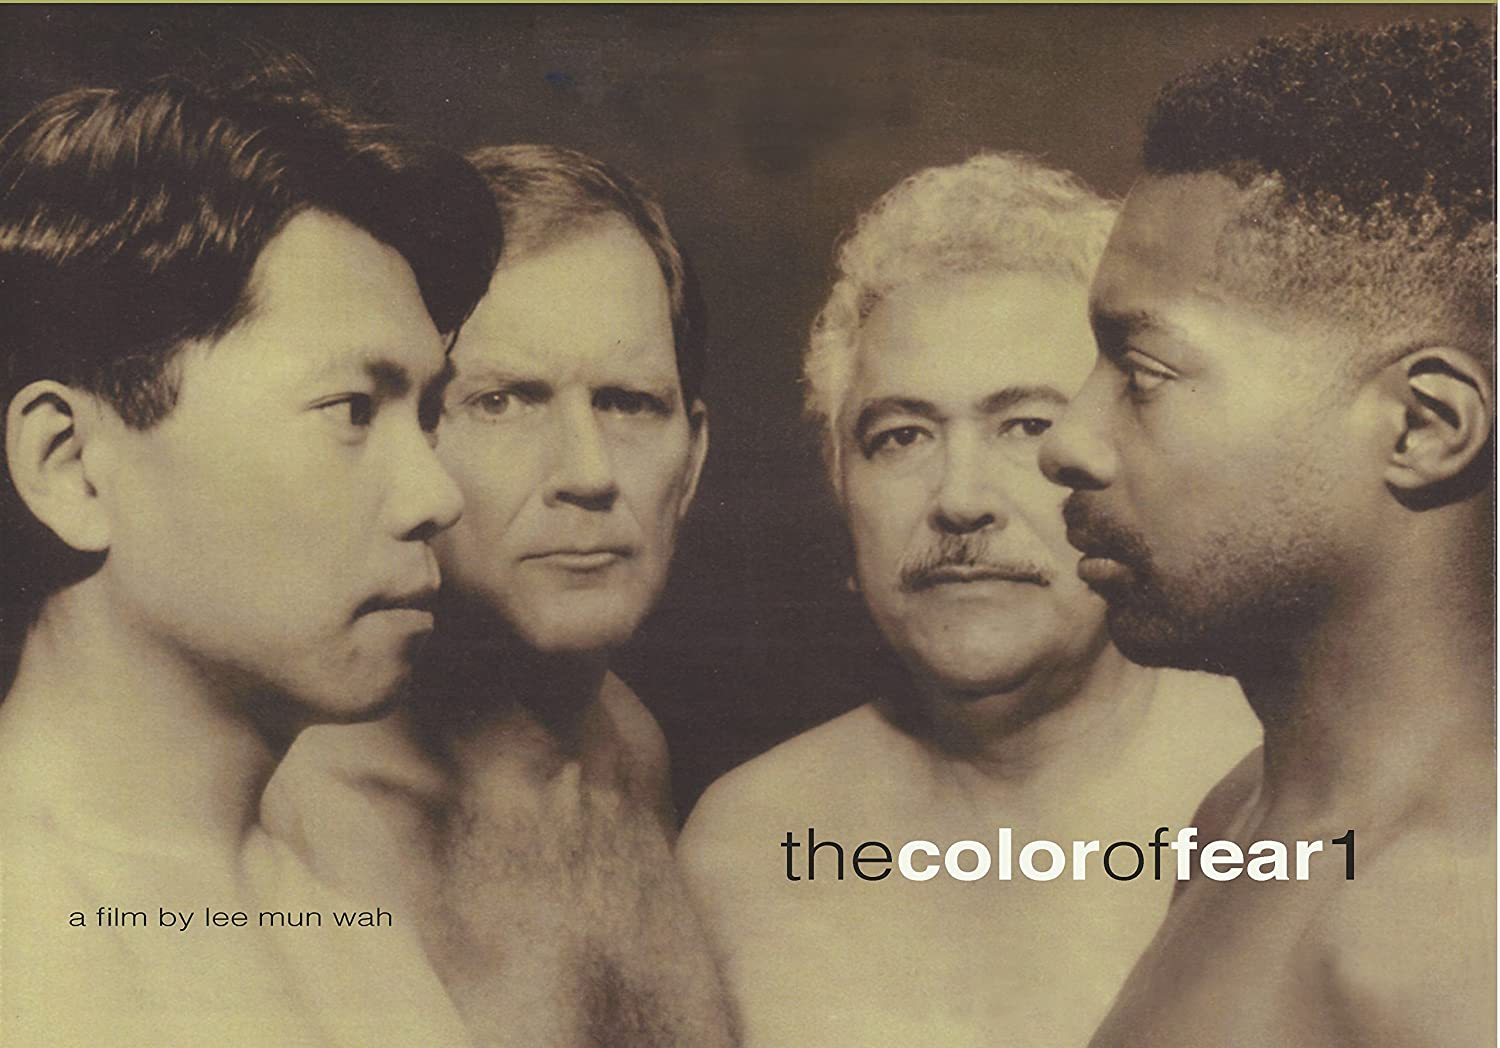 The cover, in black and white, for the film. Four shirtless men are standing closely together. In the foregrounded left is an Asian man facing the Black man on the right, who is looking straight back. Behind them, both looking at the viewer, are a white man (left) and a Latino man (right). Bottom left text: a film by Lee Mun Wah. Bottom right text: The Color of Fear 1.